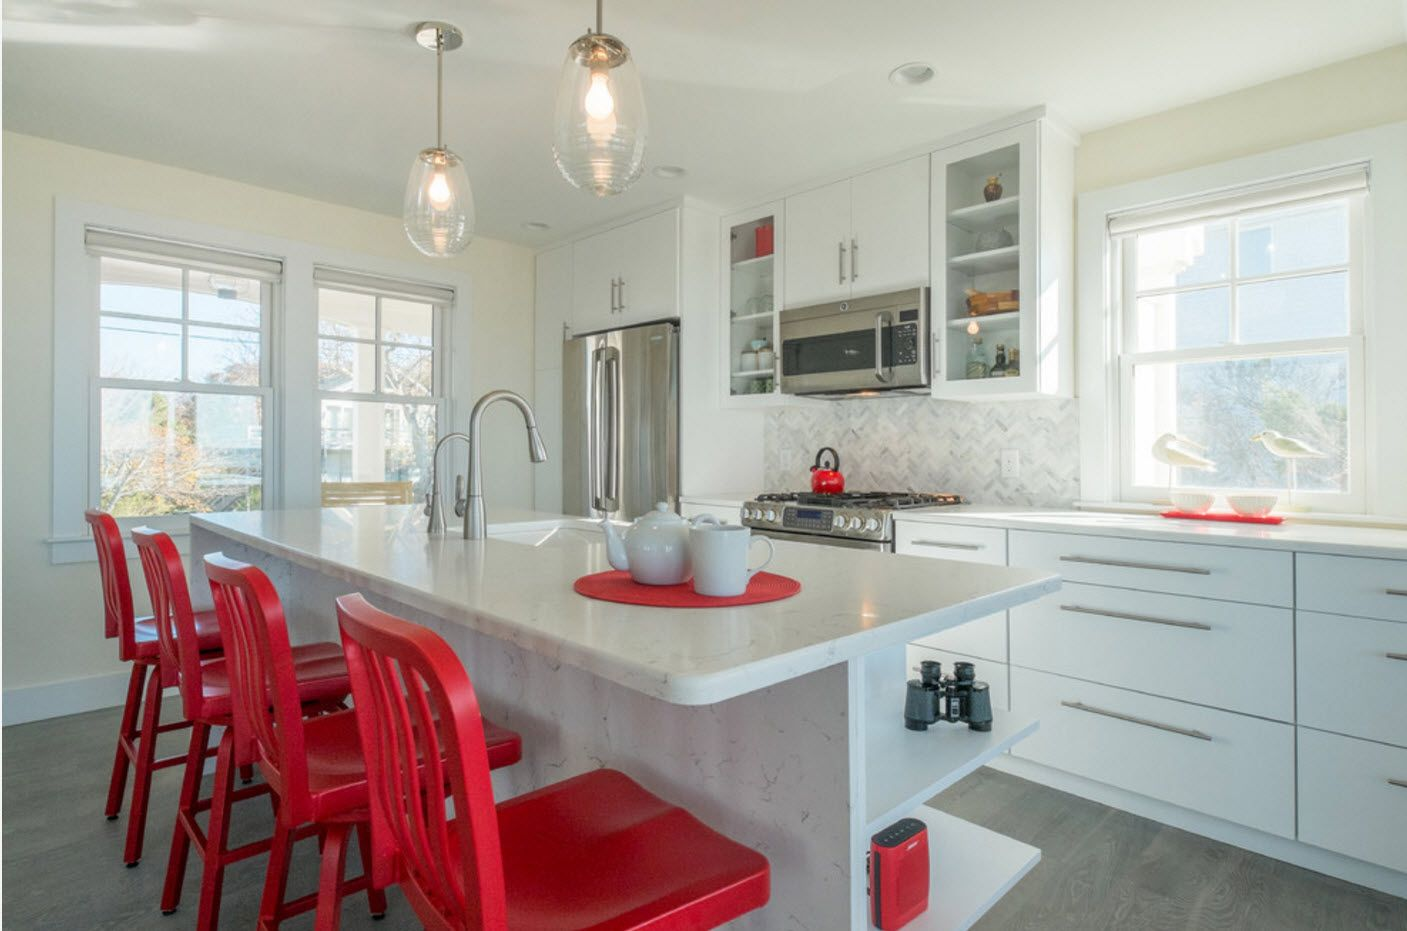 White kitchen deisgn with bright orange accent in the form of chairs and tray